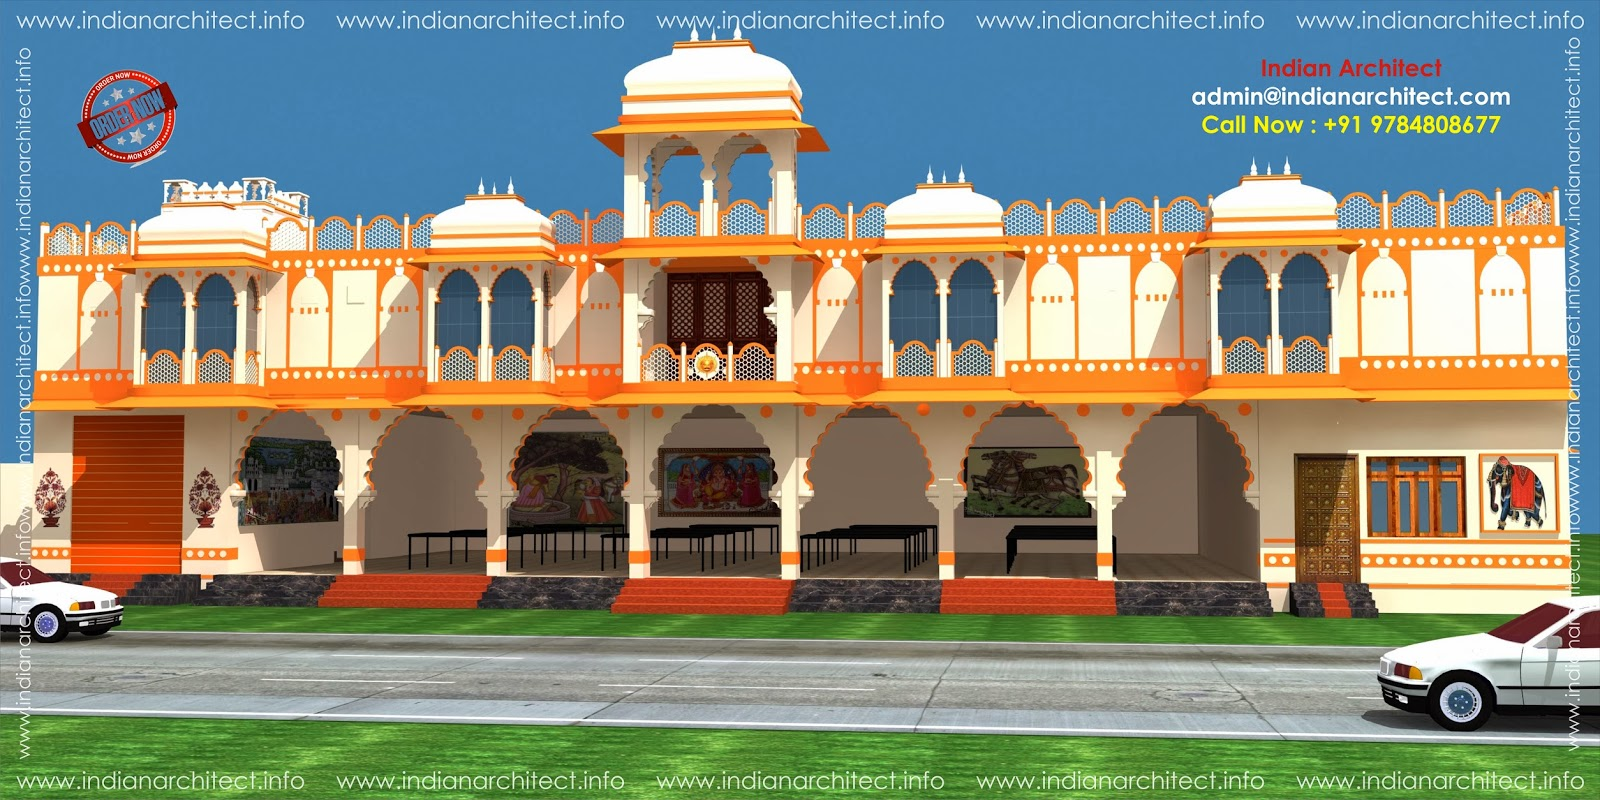 Royal Rajasthani Road Restaurant At Rithola Toll Naka Chittorgarh ...